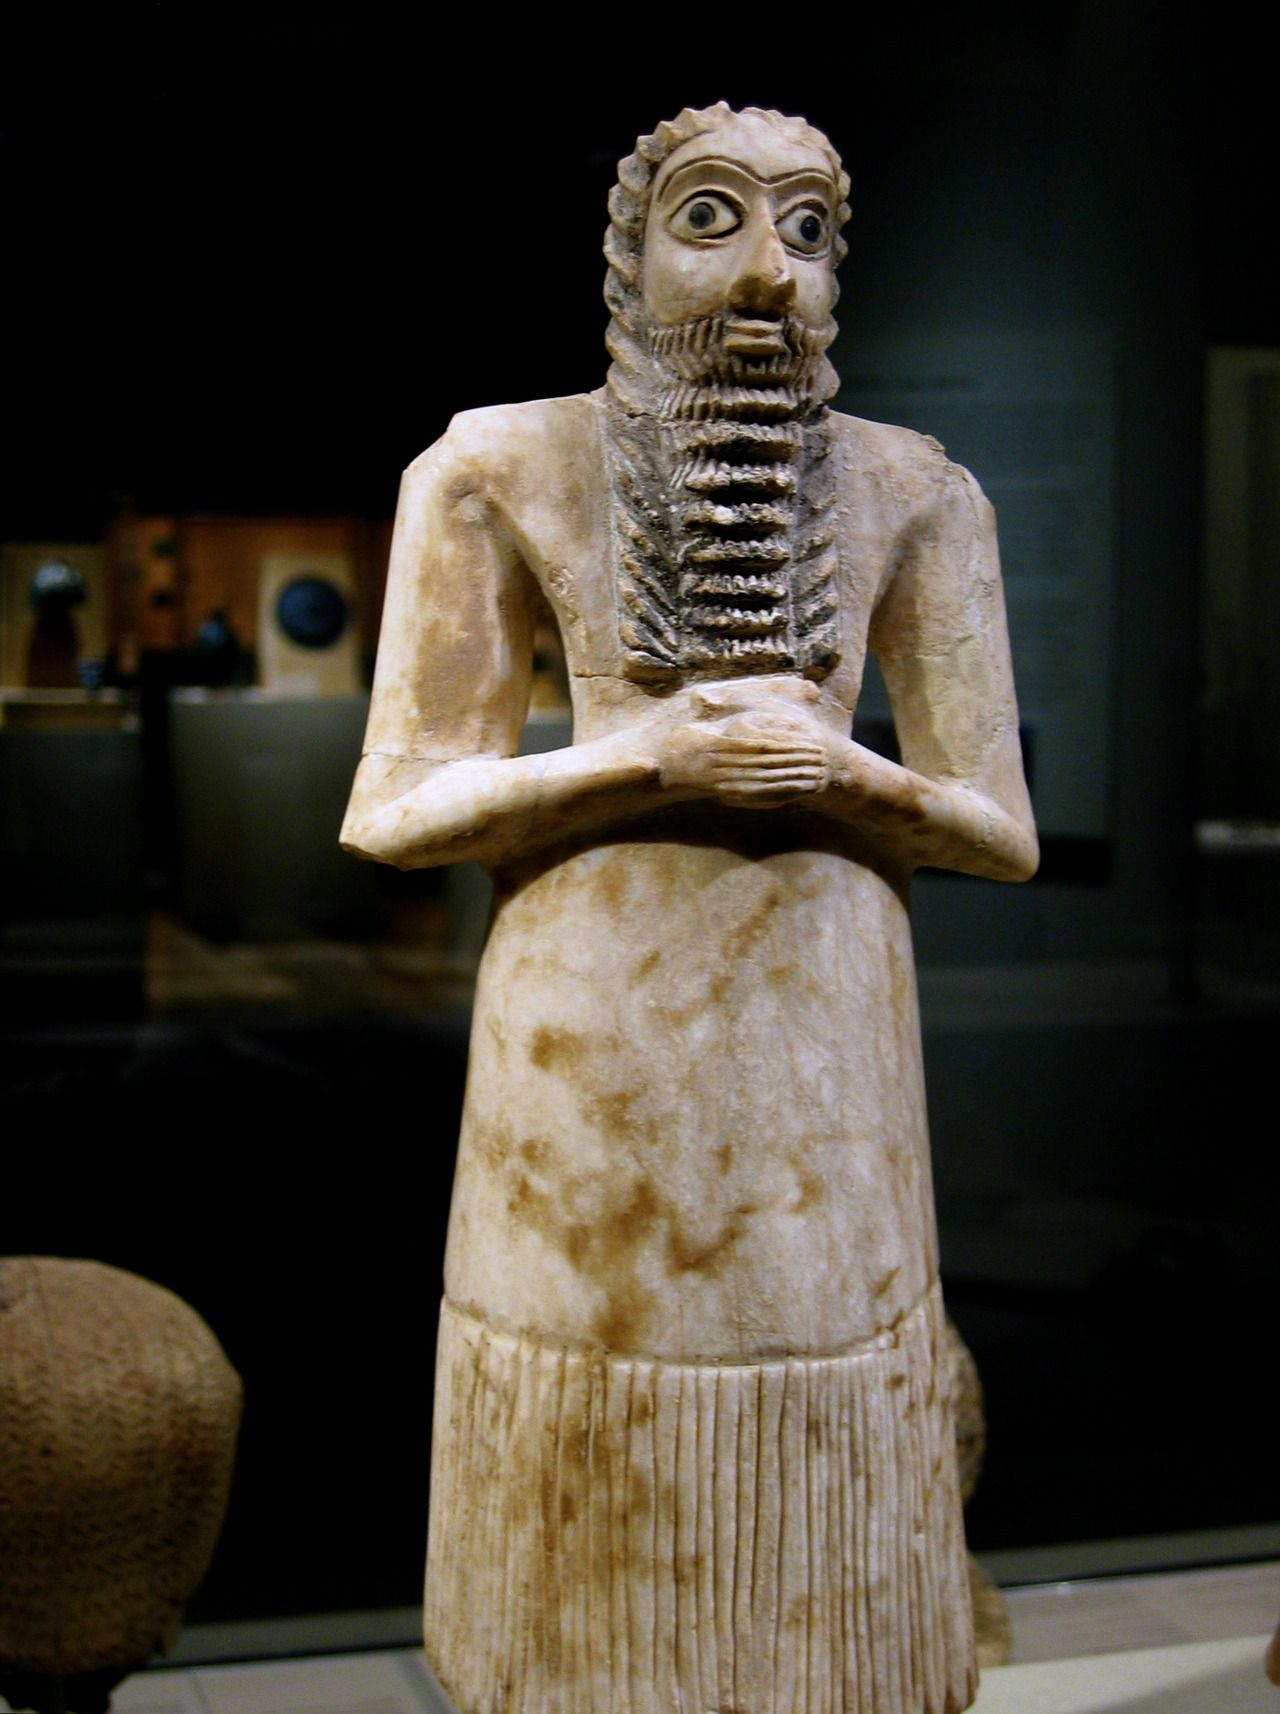 ancientart:  AncientMesopotamian art,Standing Male Worshiper, currently located at theMetropolitan Museum of Art, NY